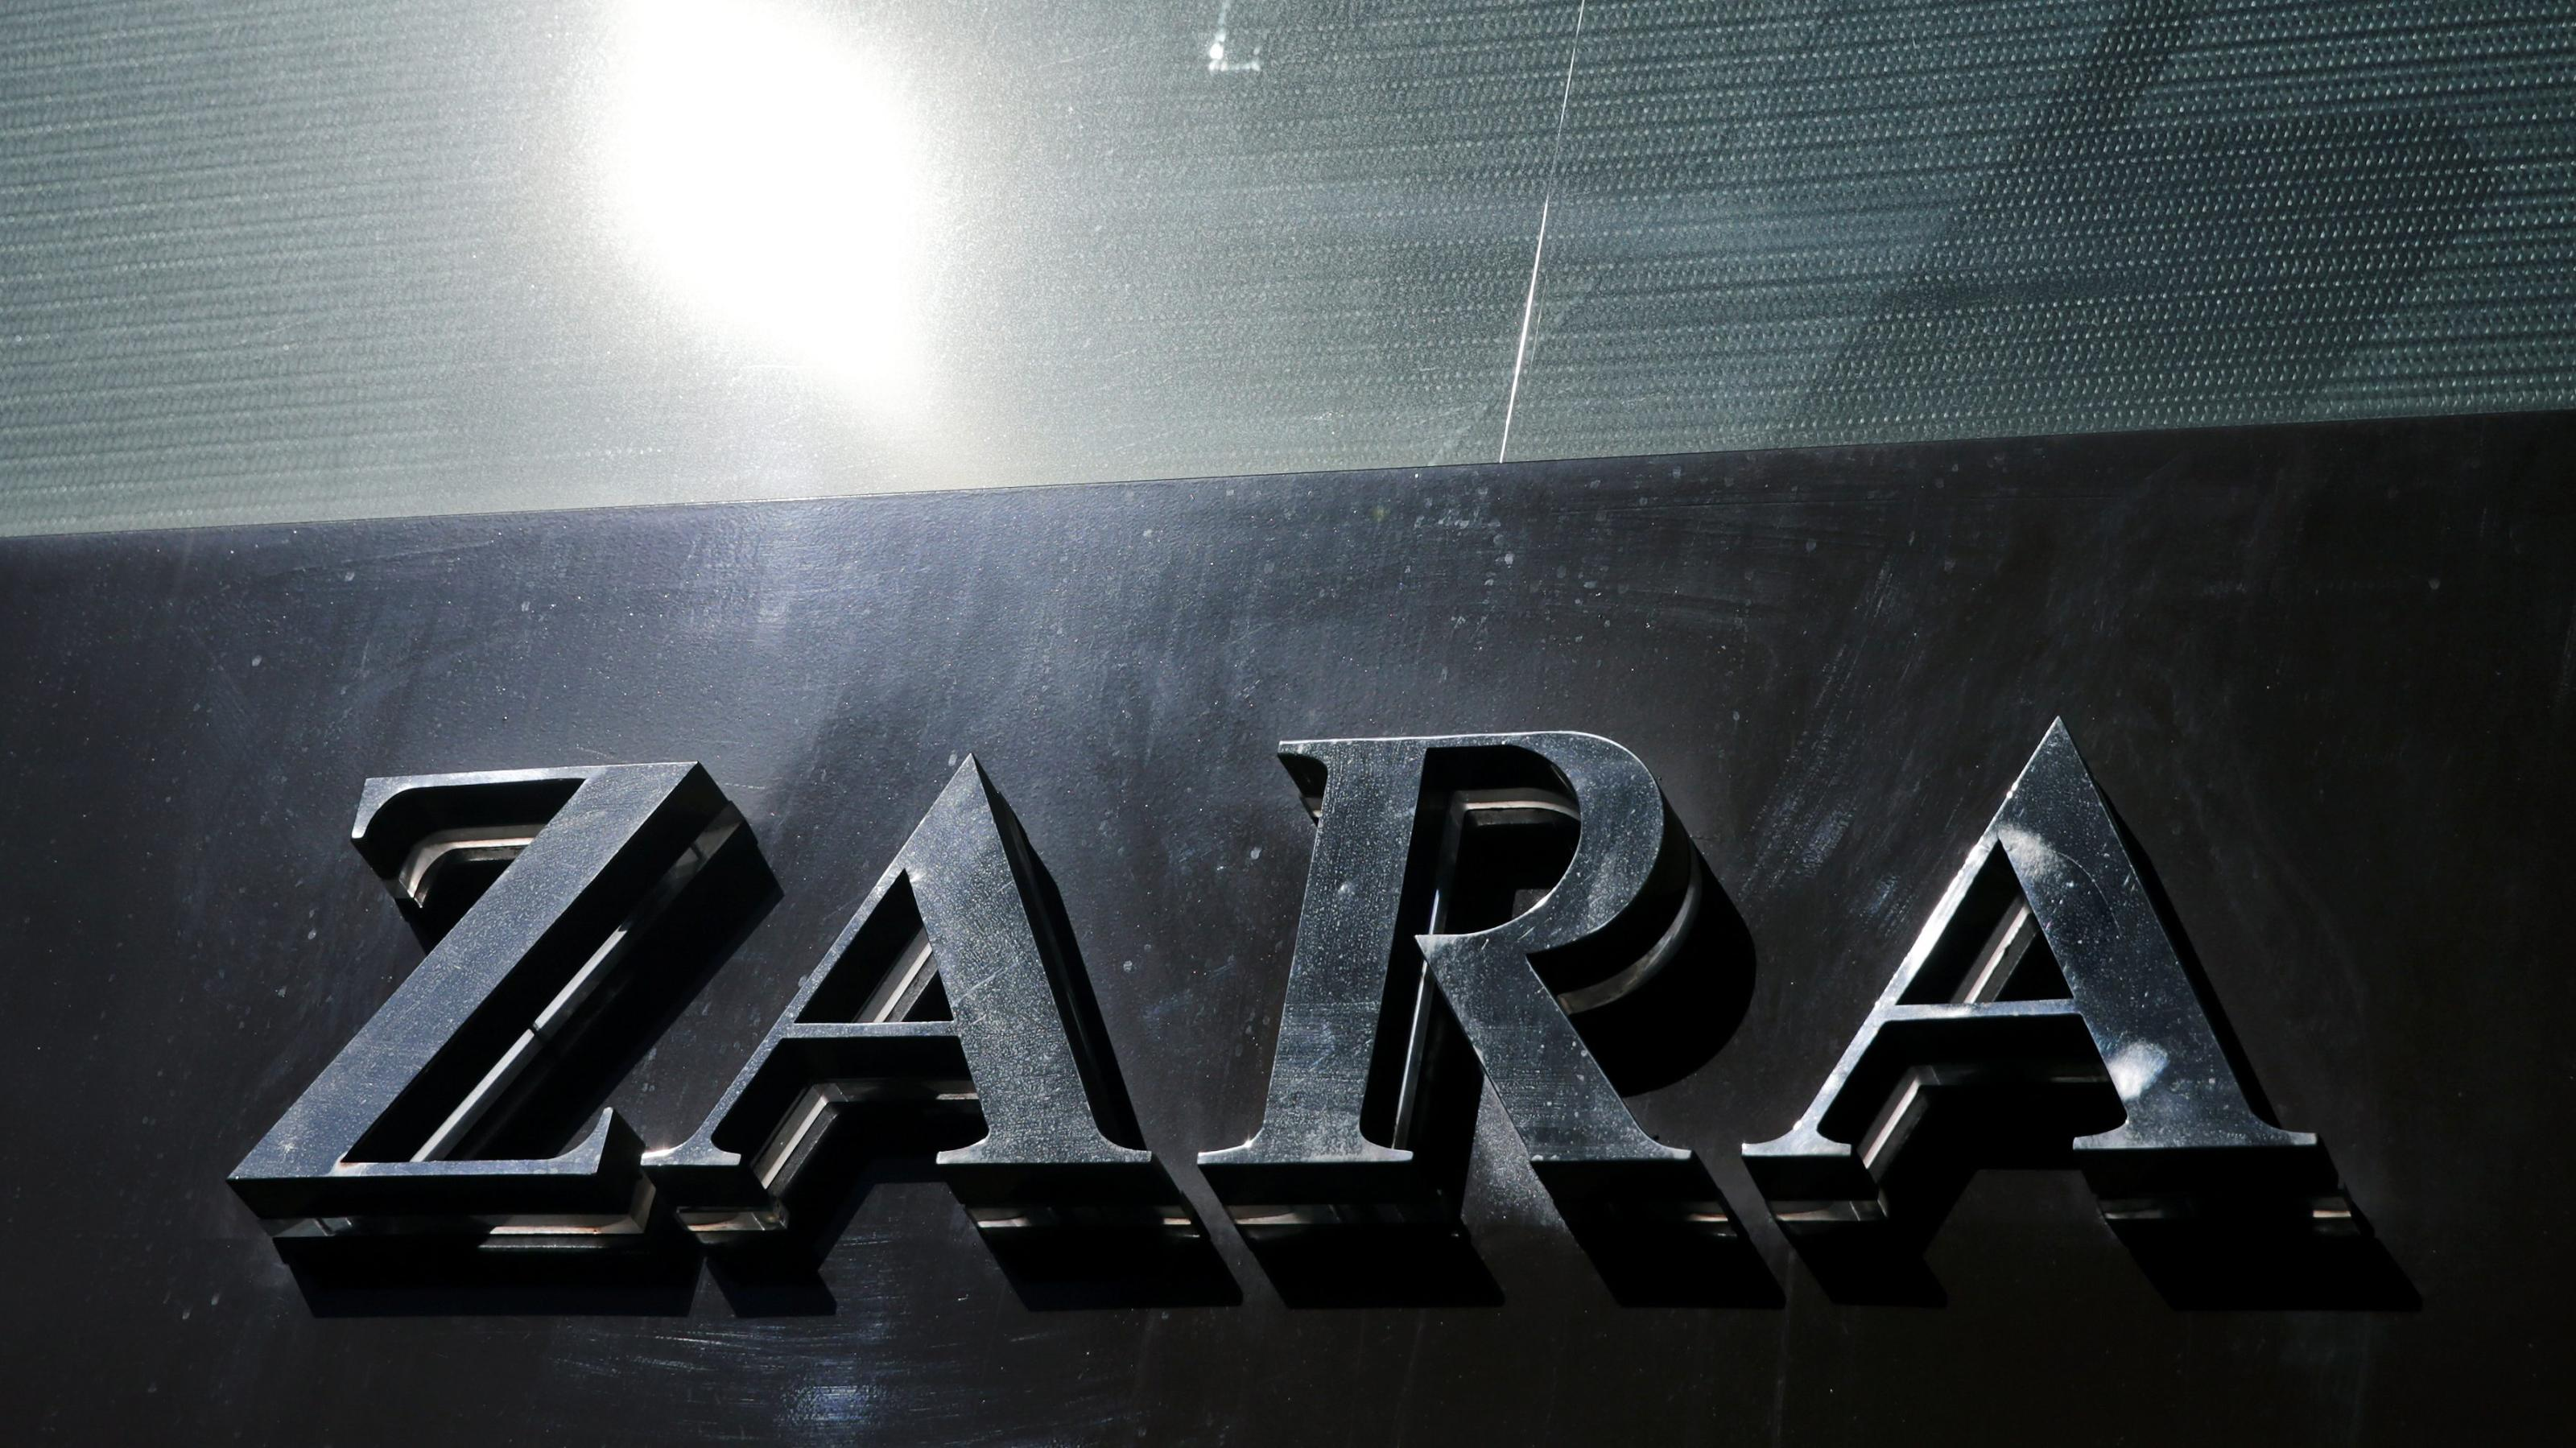 How a Zara shirt raises ethical issues in sustainable fashion